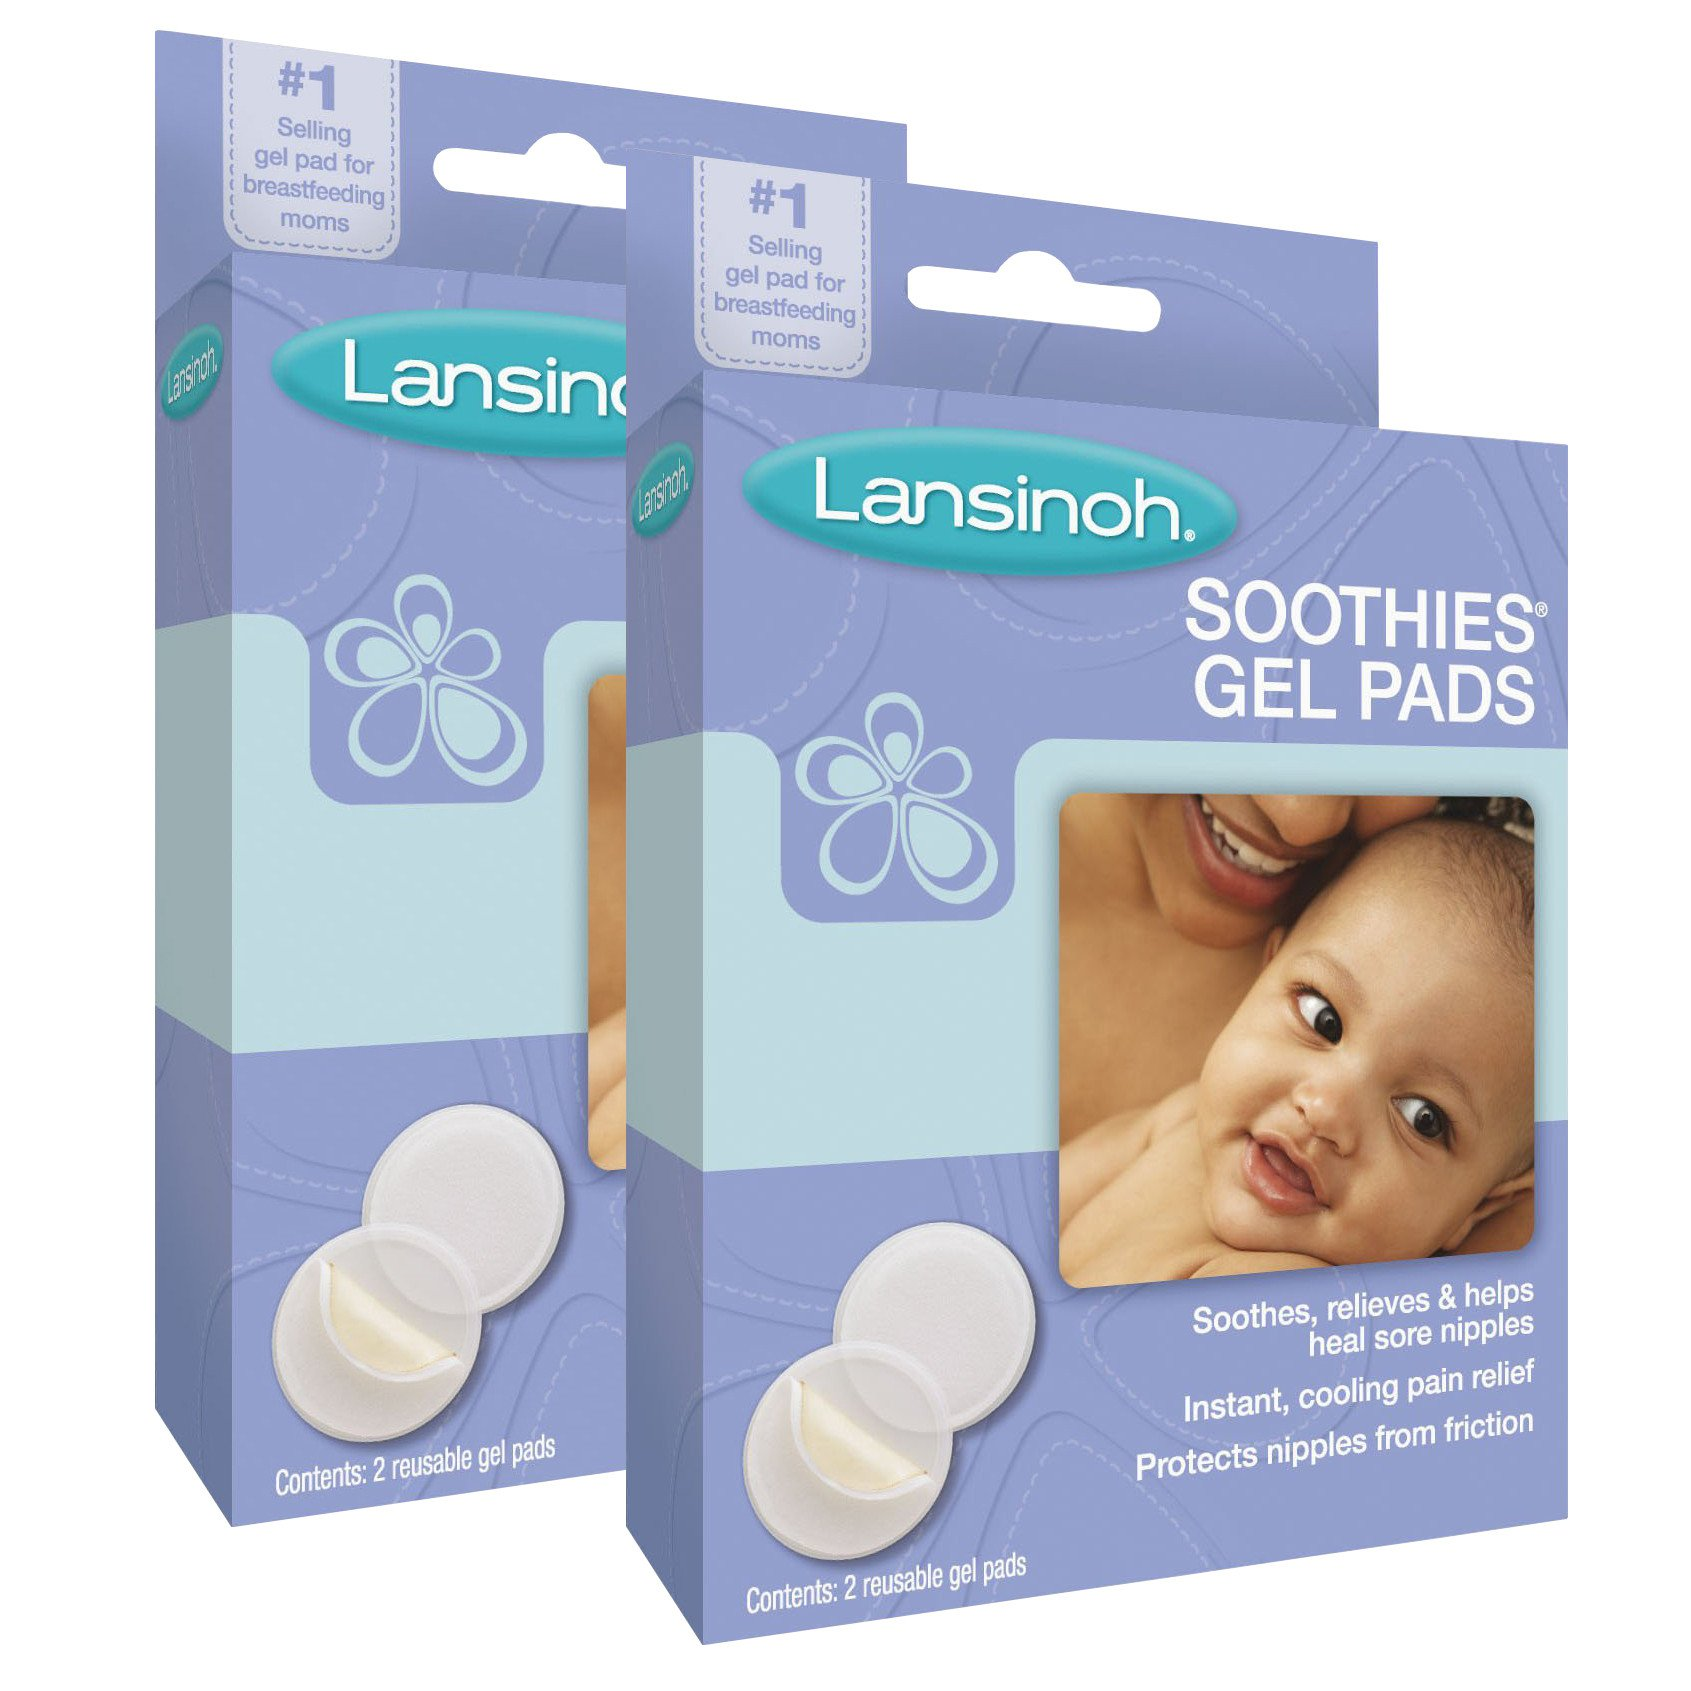 Lansinoh Laboratories Soothies Gel Pads, 4 Count